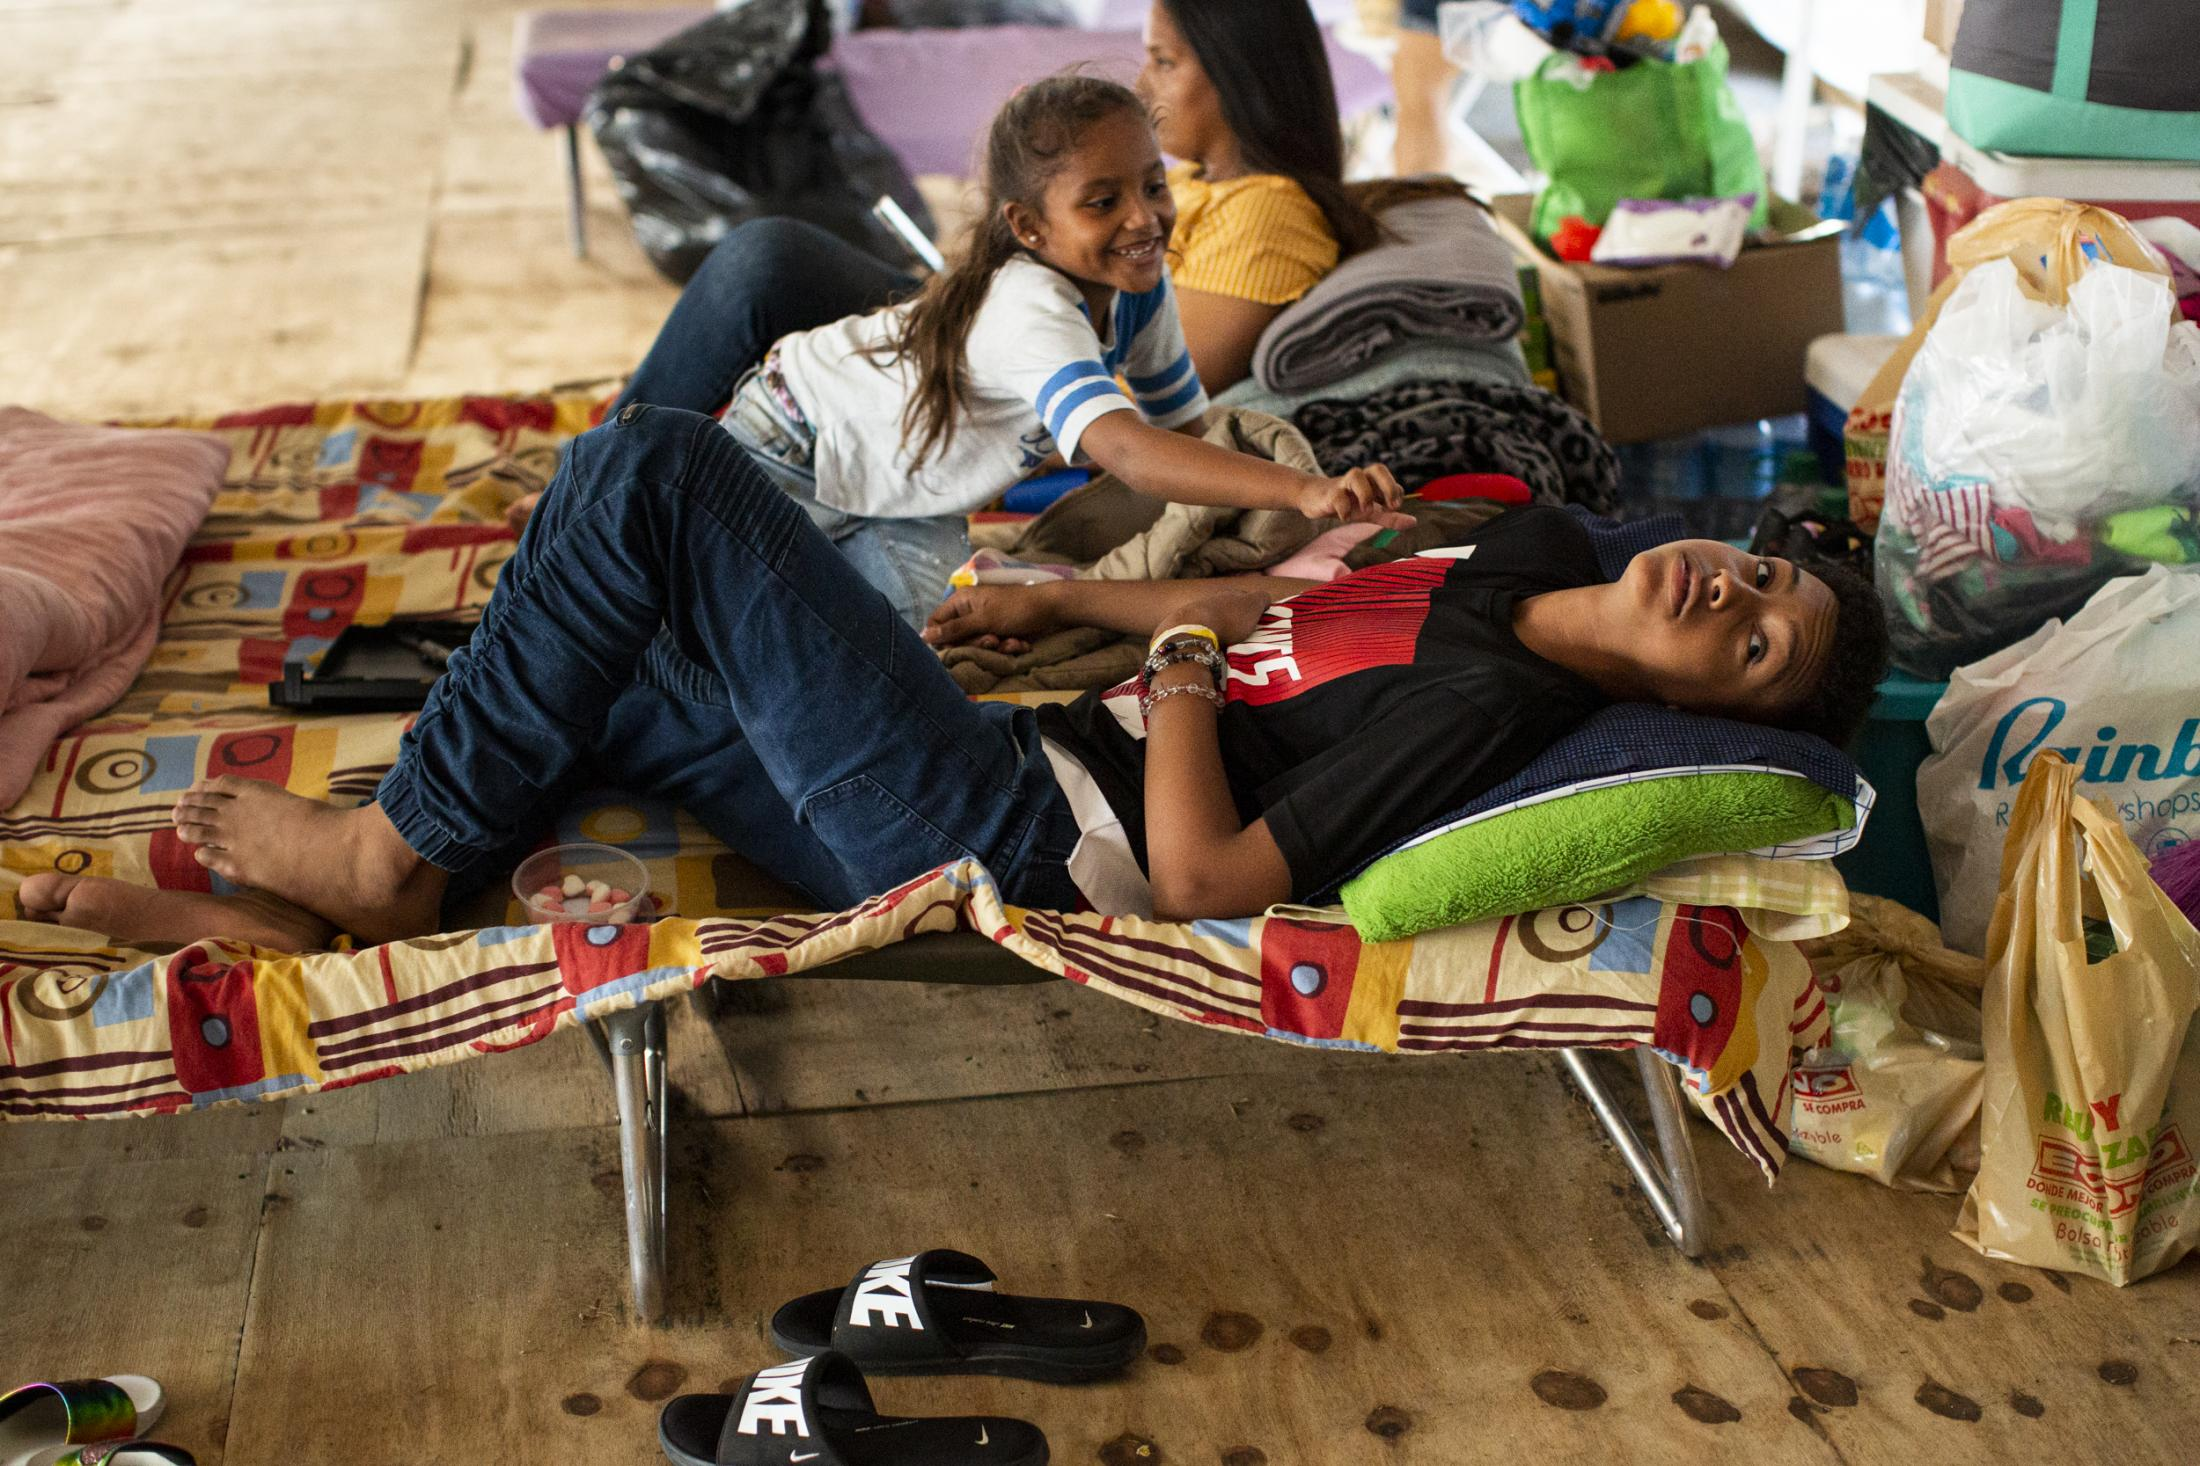 Keythens Martinez Ramirez, 12, with his sister and mother, Irmarie Ramirez Santiago, 27, and Irmarilys Torres Ramirez, 6, at their living area in the shelter based in the town's athletics track in Guanica, P.R., on February 13, 2020. The family, whose house was damaged in the earthquake, has been between shelters since Jan 7. After a cluster of earthquakes ravaged the south of the island last month 800 people are still living in government shelters and makeshift camps. Hundreds are thought to be camping in their backyards In fear of having their homes collapse if another mayor quake hits. On January 7 the strongest earthquake hit at a 6.4 magnitude. (Erika P. Rodriguez for The New York Times)